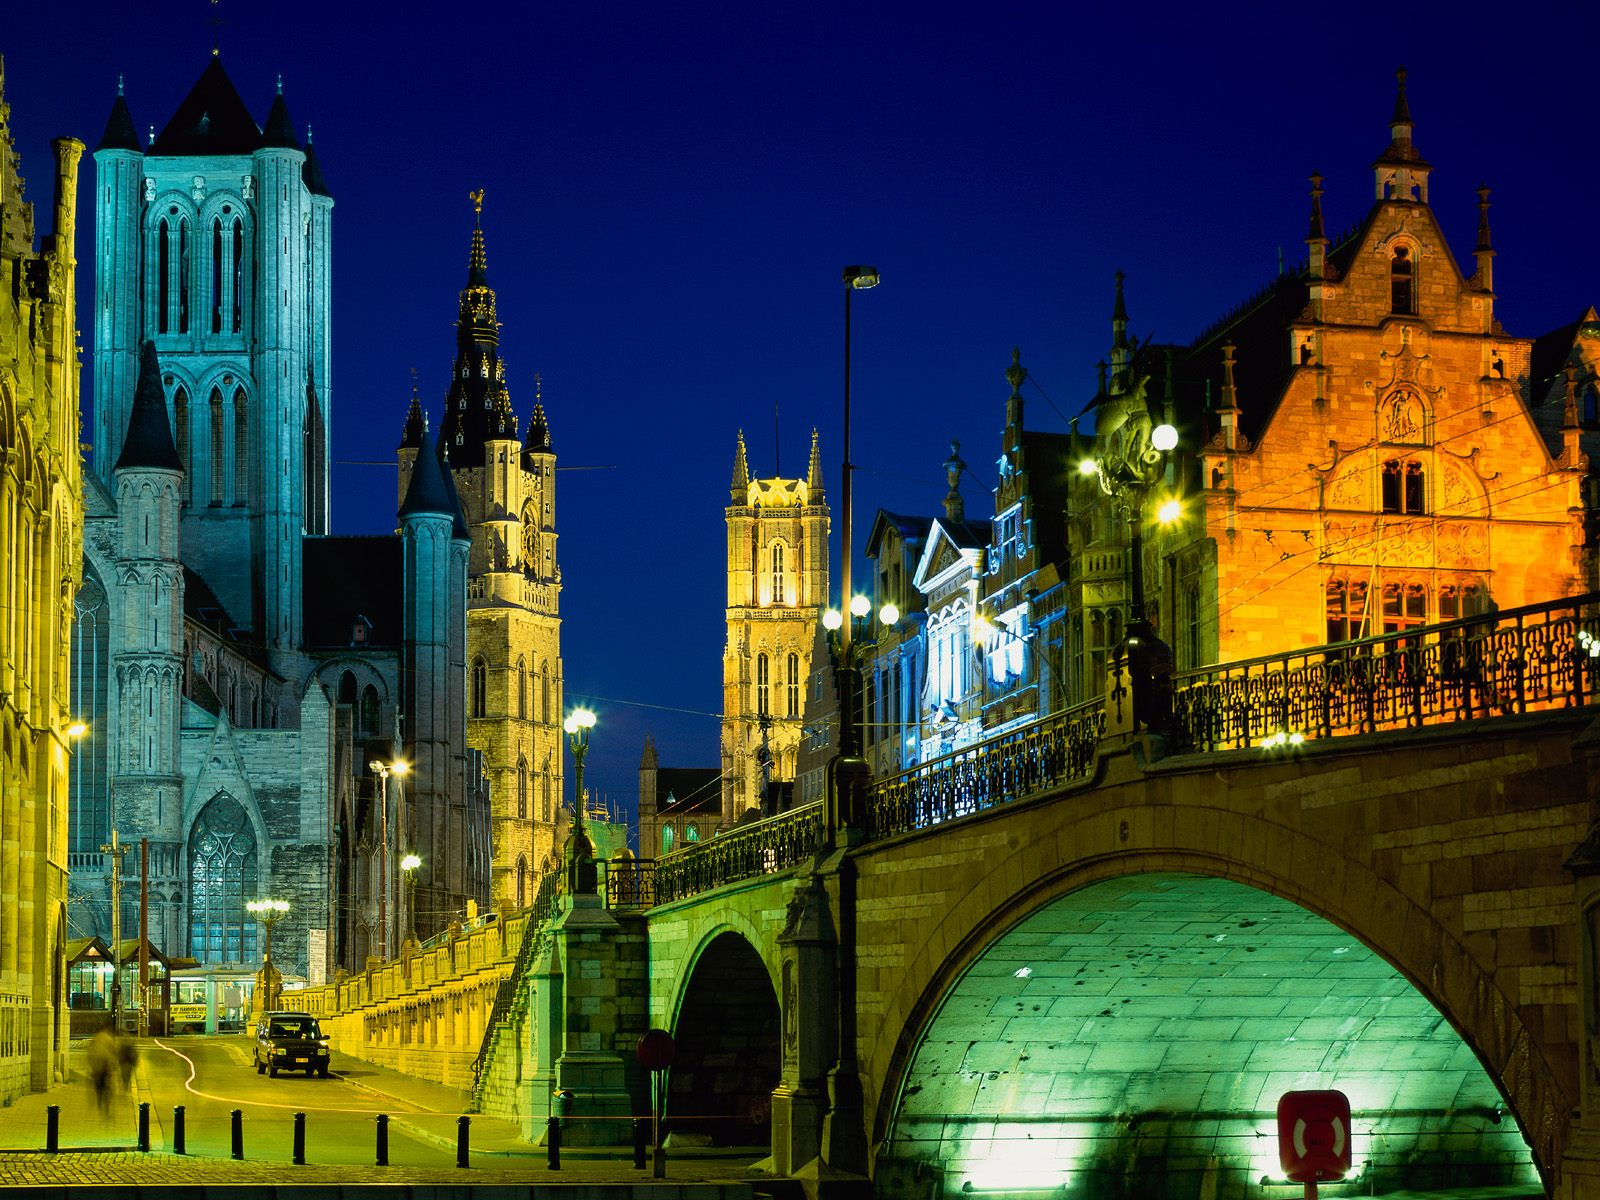 Evening in Ghent Belgium